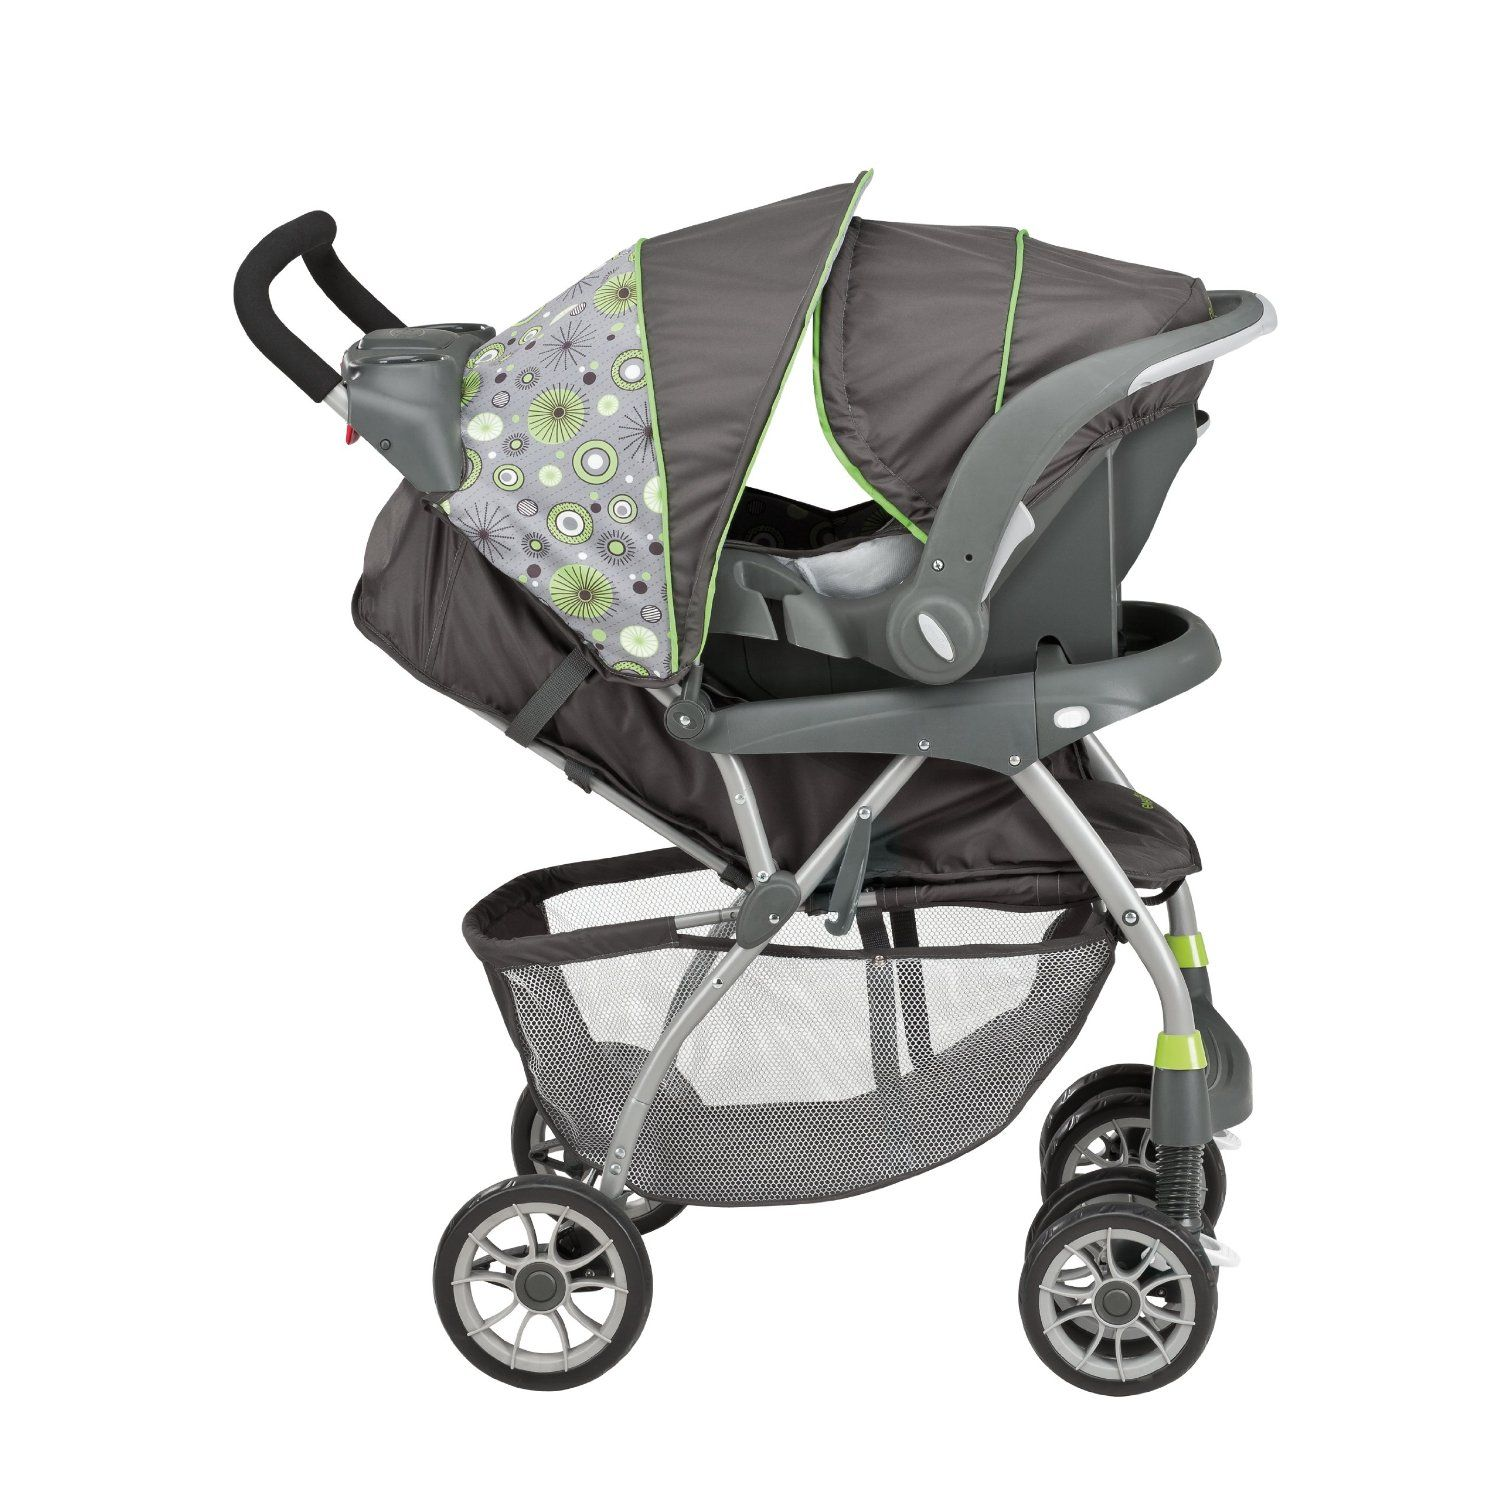 Baby Stroller Travel Systems. Evenflo Journey 300 Stroller